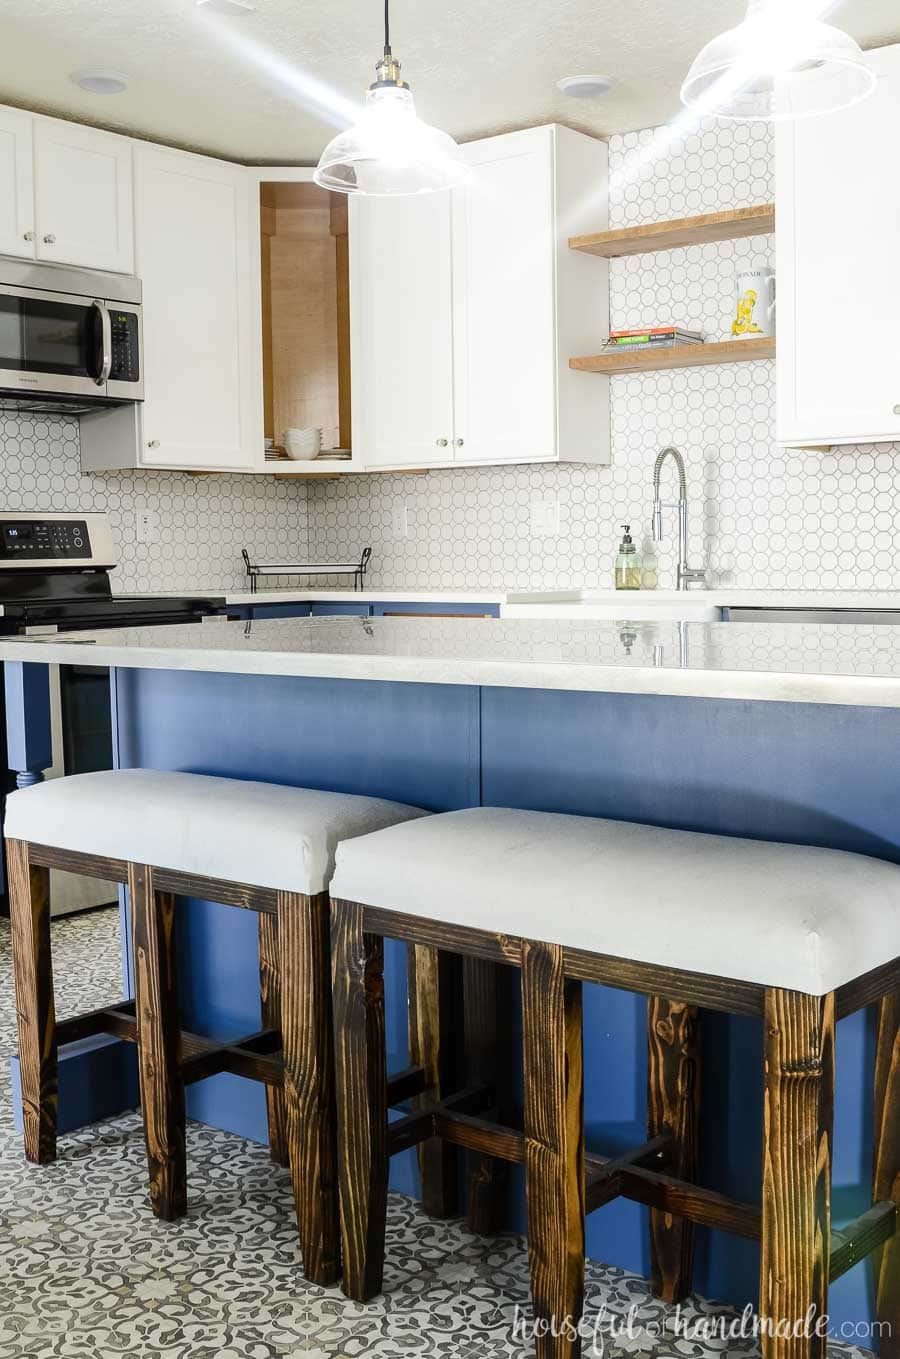 Navy blue kitchen island with rustic bar stool benches are the perfect centerpiece for this budget farmhouse kitchen remodel. Housefulofhandmade.com